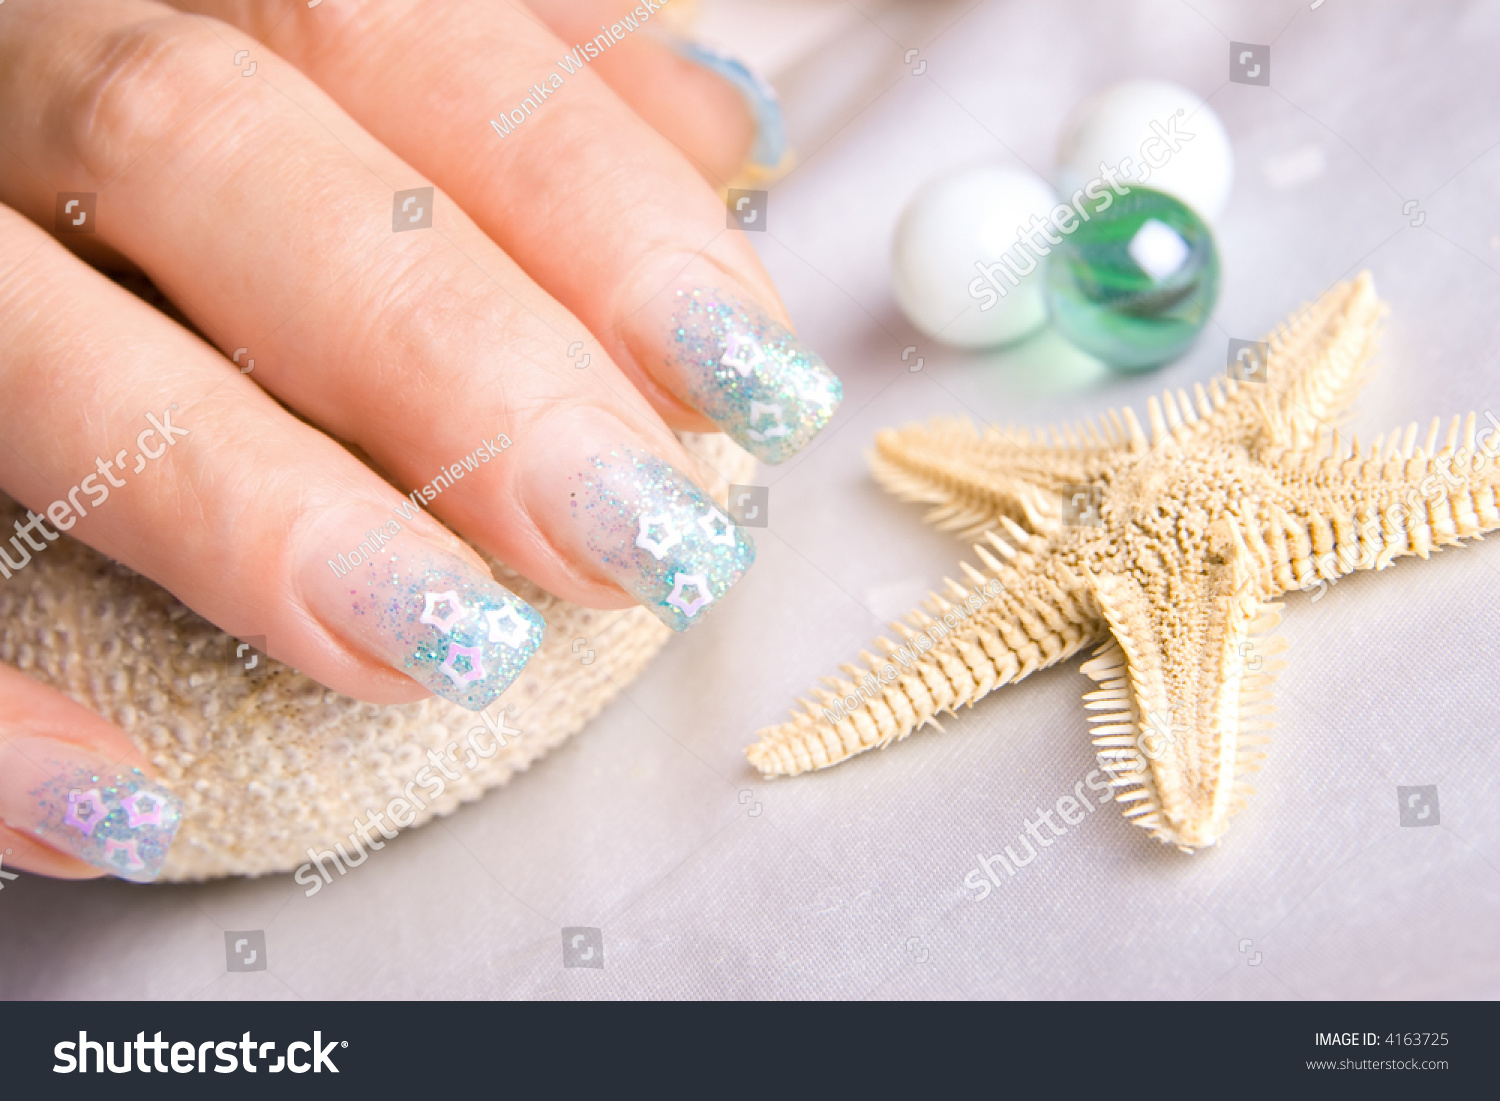 Decorated with Enamel Nails